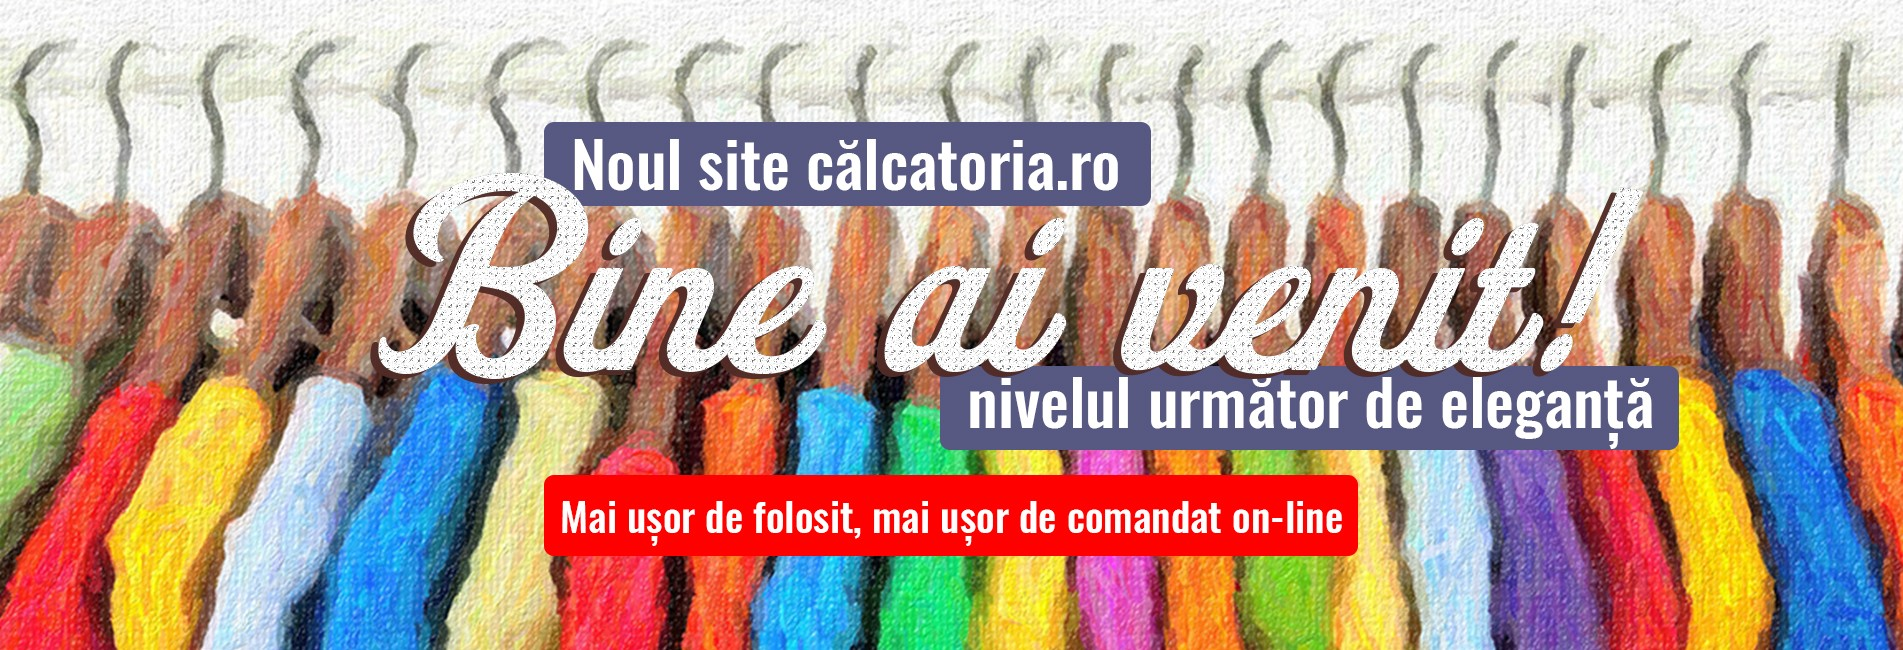 Noul site calcatoria.ro